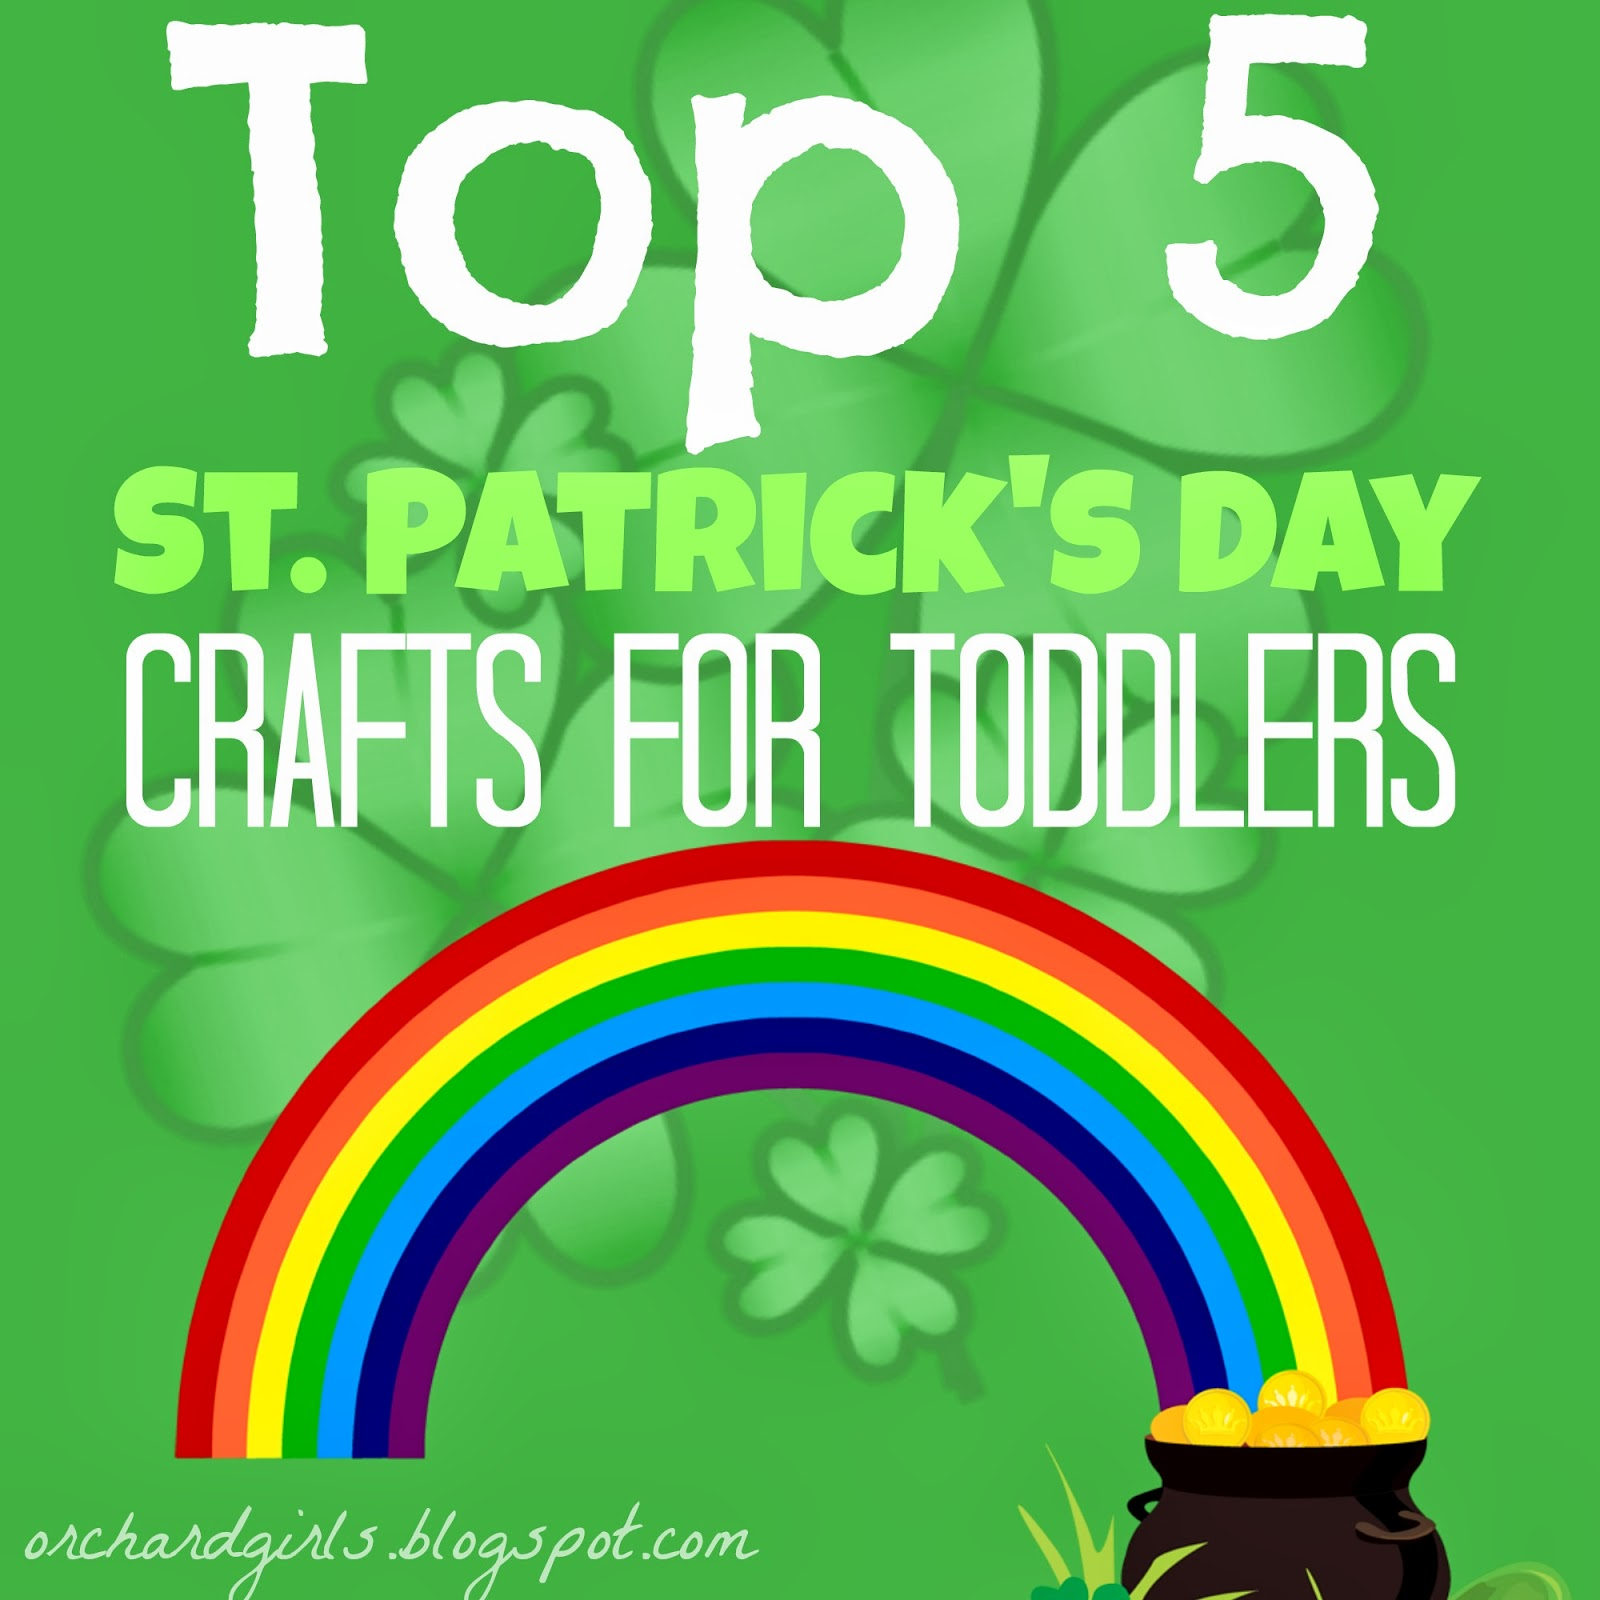 St patricks crafts for preschoolers - I Noticed That A Lot Of You Enjoyed Our Top 5 Valentine S Day Crafts For Toddlers So I Thought I Would Round Up A Few Fun Crafts For St Patrick S Day